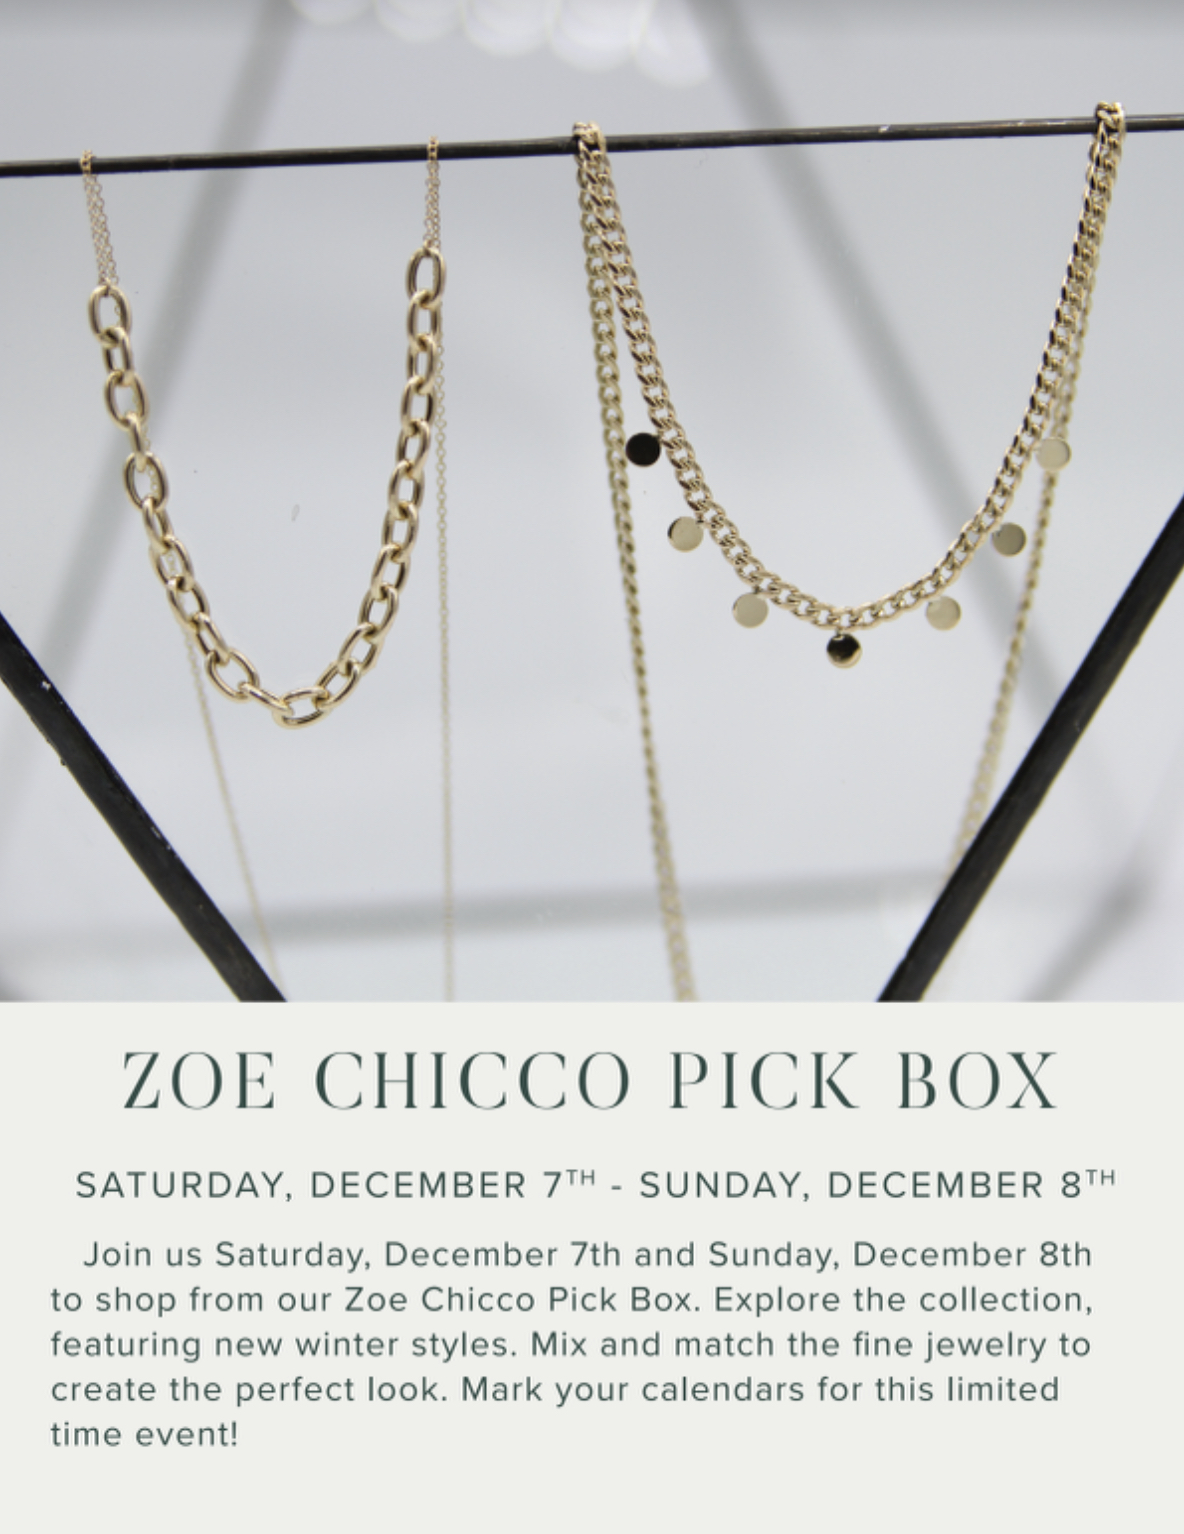 Zoe Chico Pick Box